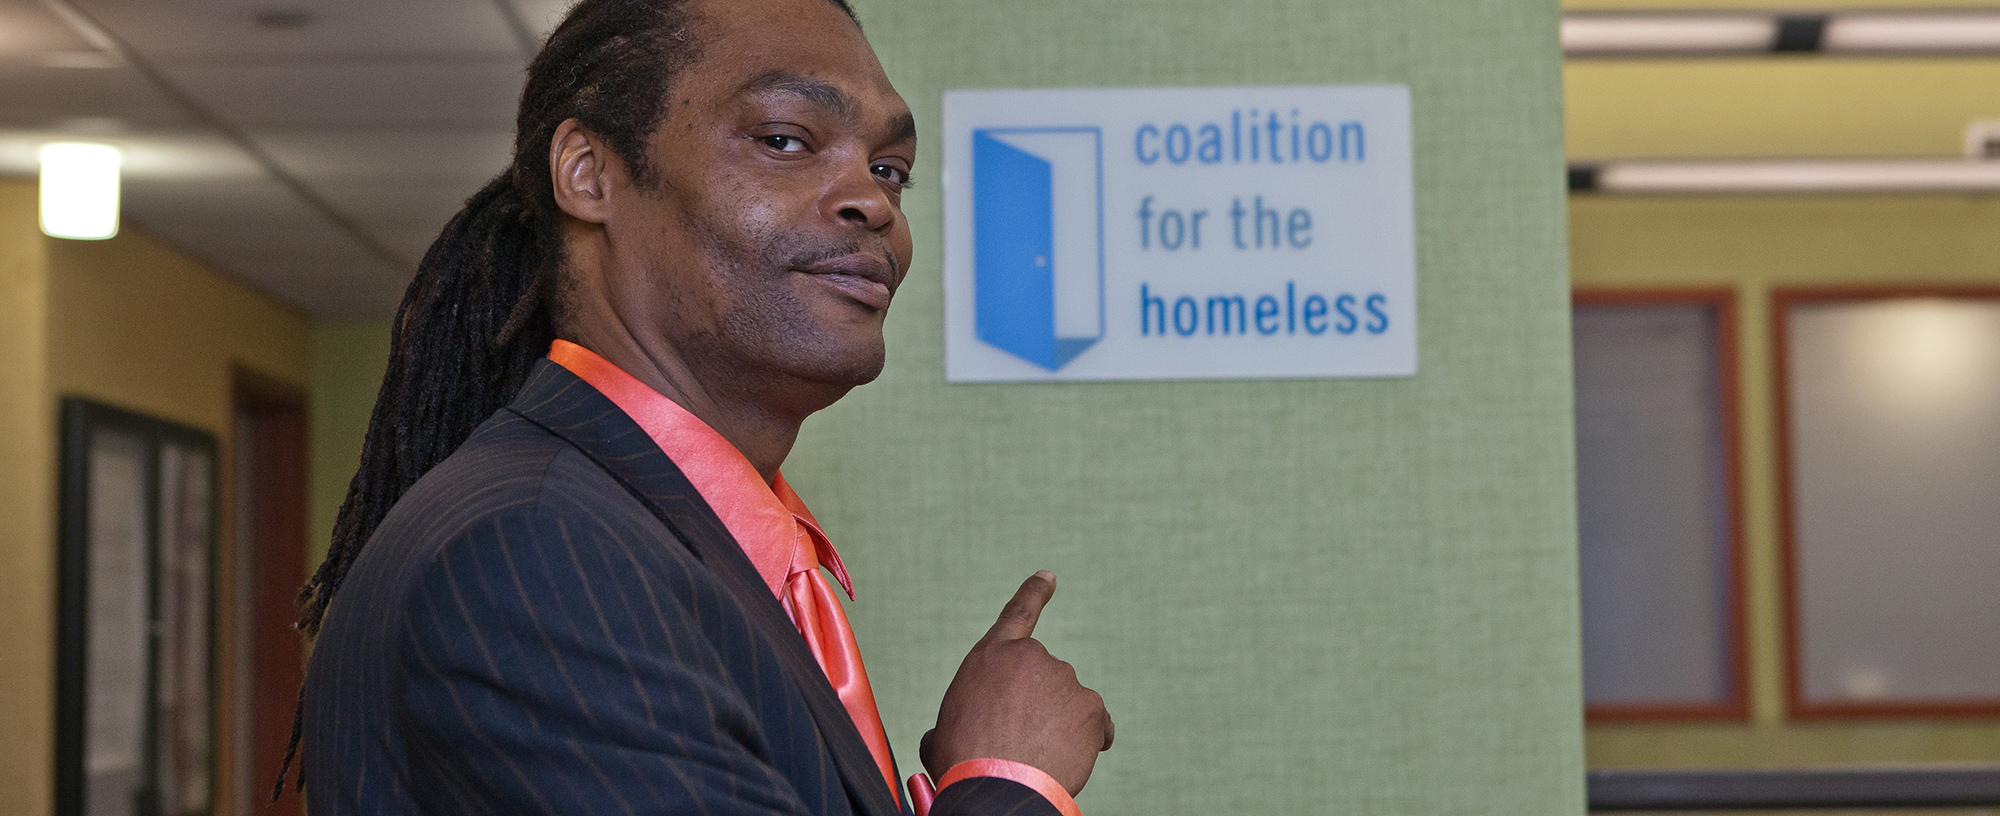 Man in suit points to sign featuring the Coalition for the Homeless logo.